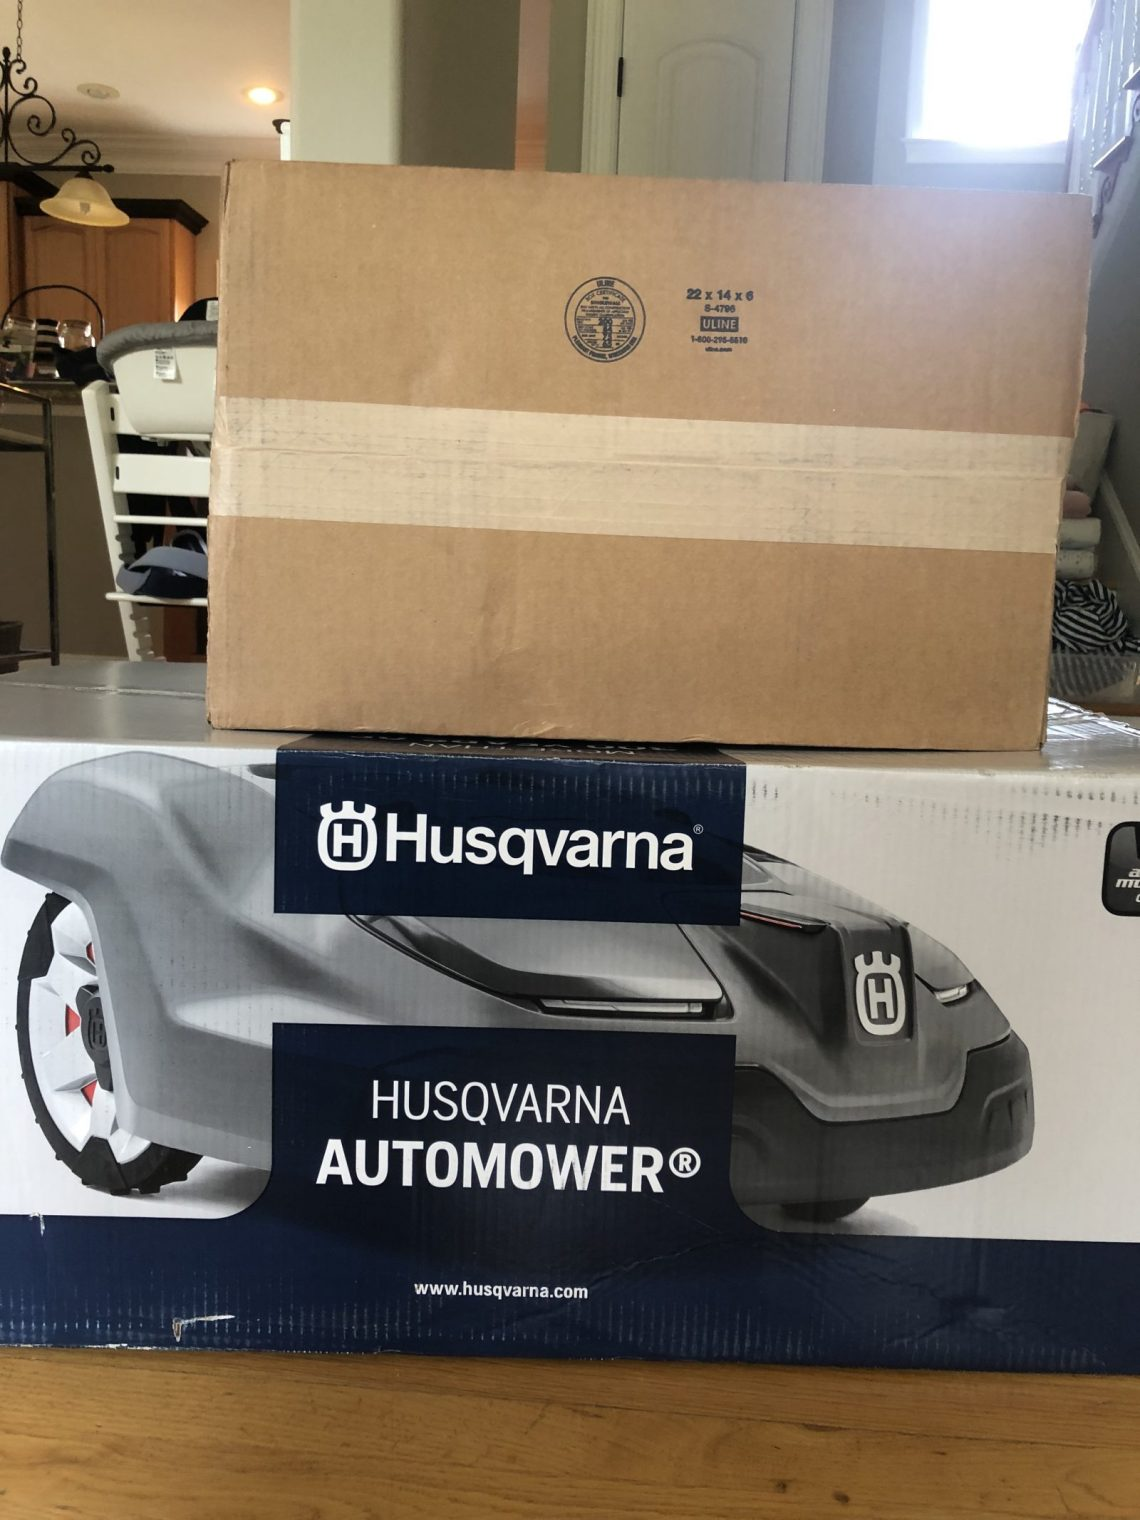 Husqvarna AutoMower Review - Robot Mower